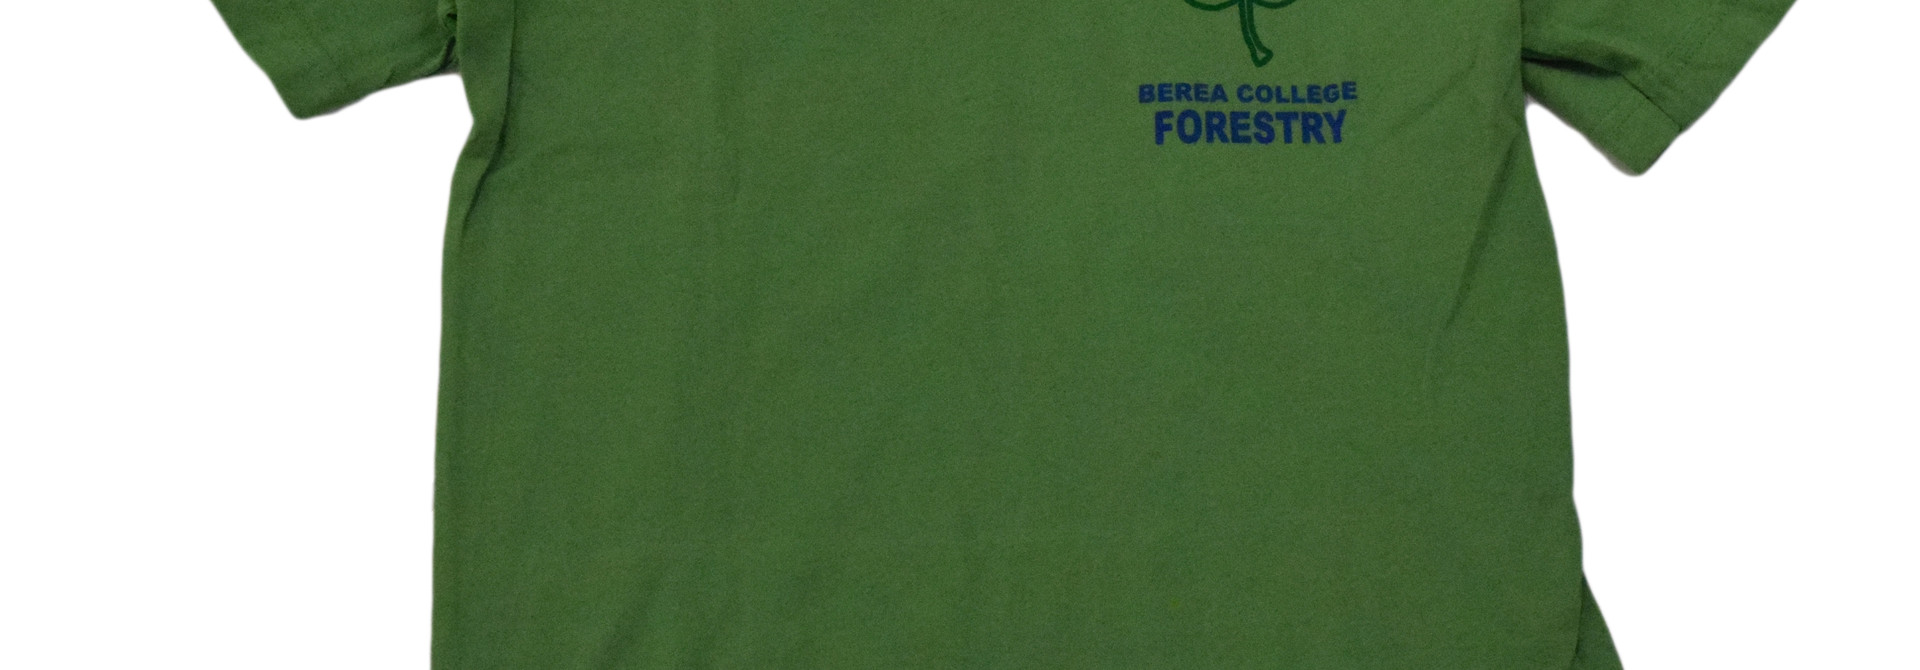 Berea College Forestry T-shirt